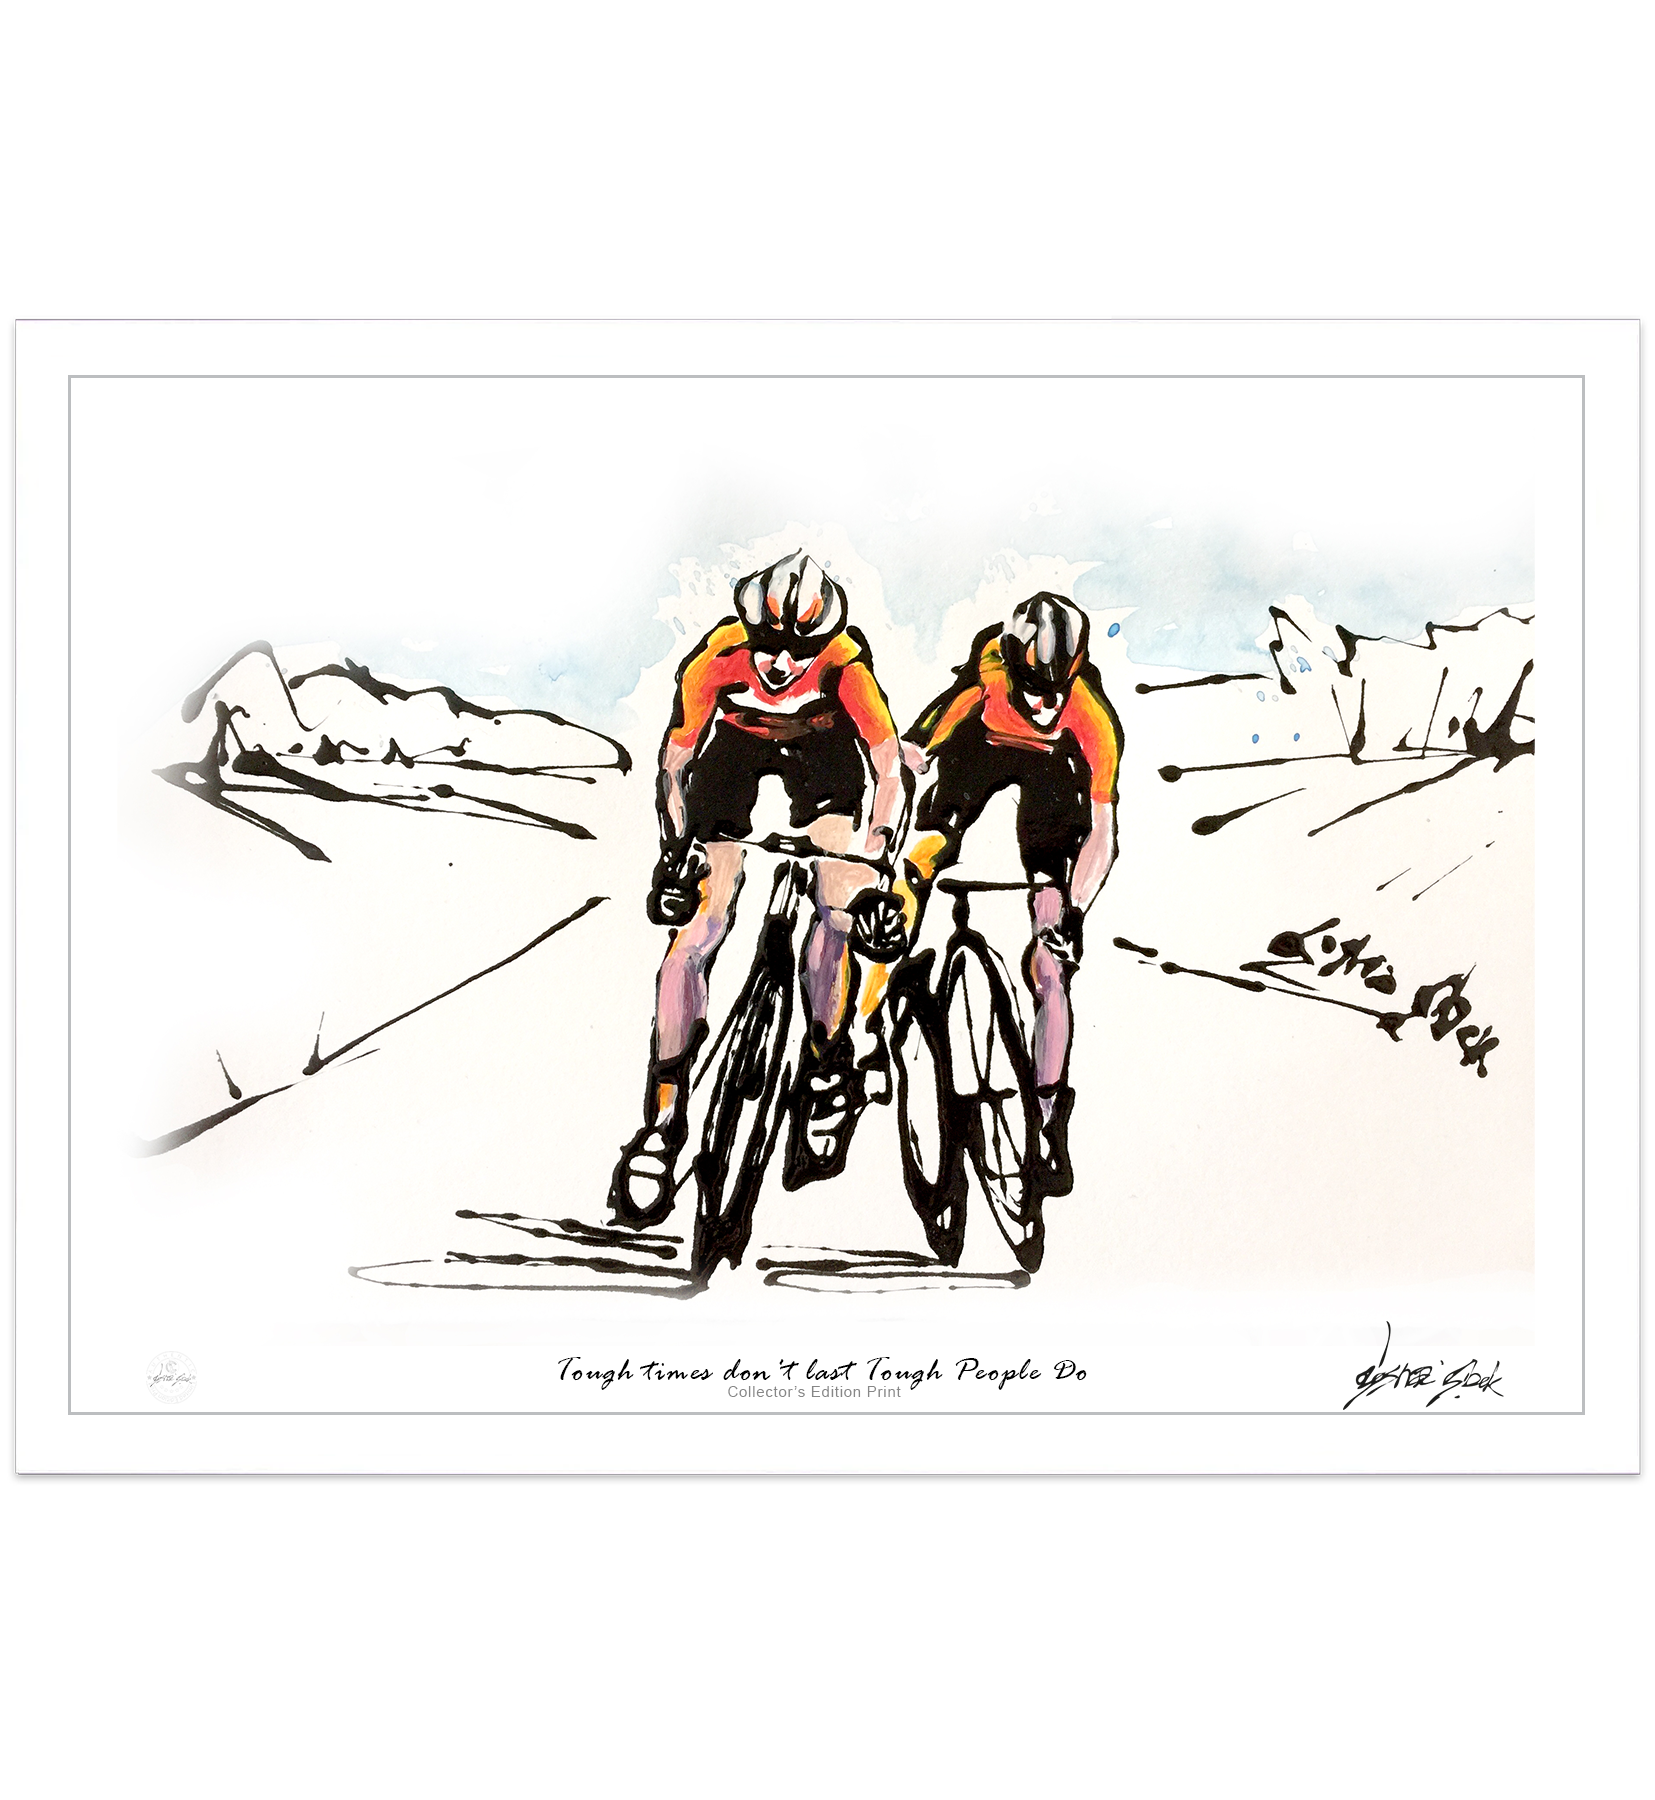 Two Cyclists Pursuing Each Other On Their Bikes Determined To Get